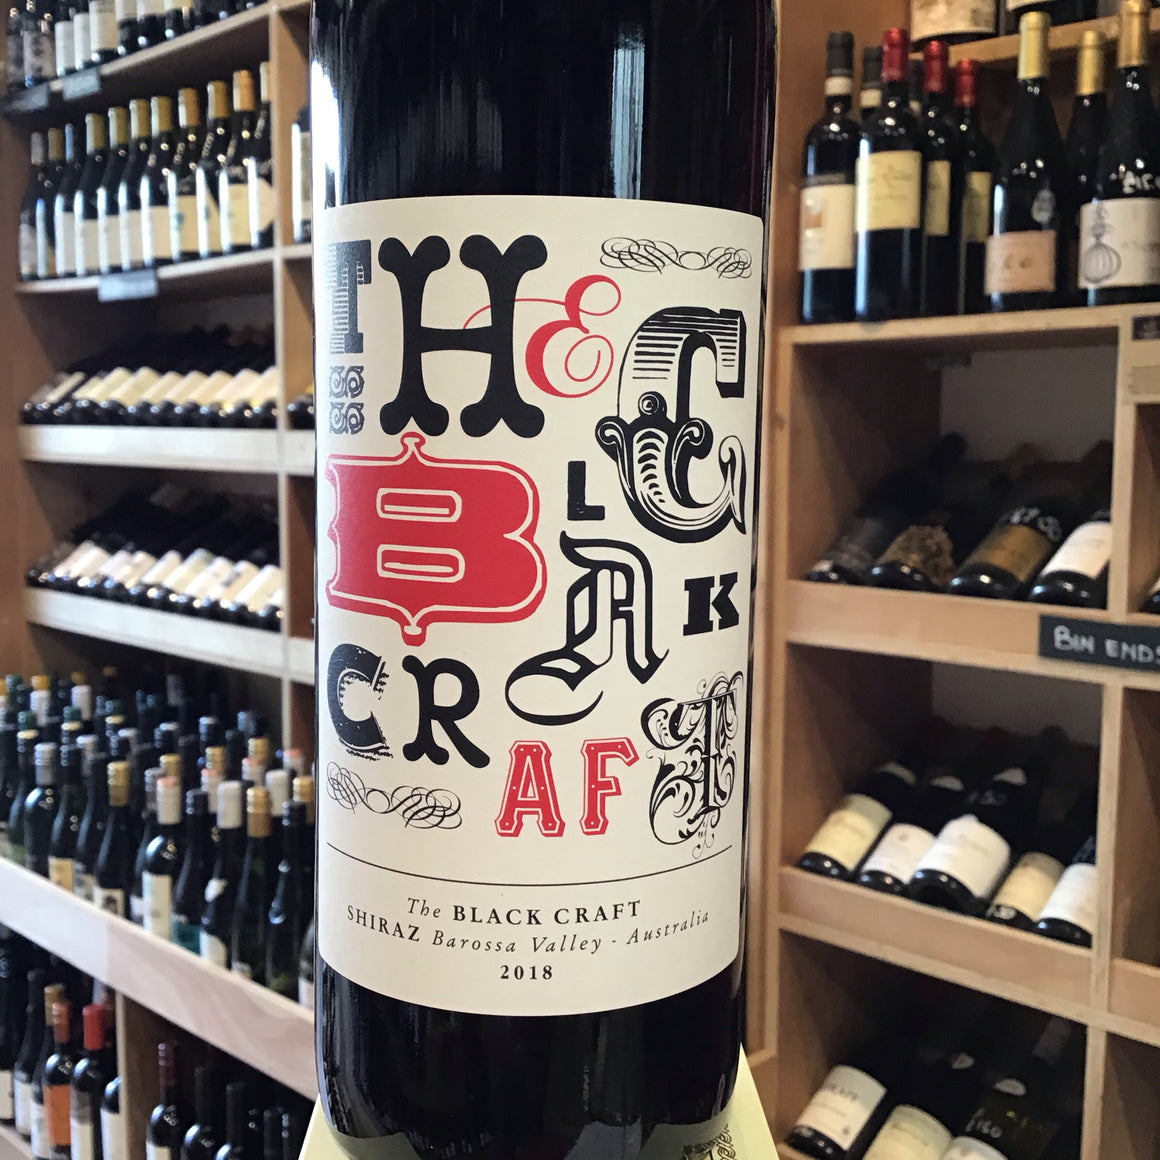 The Black Craft Shiraz 2018